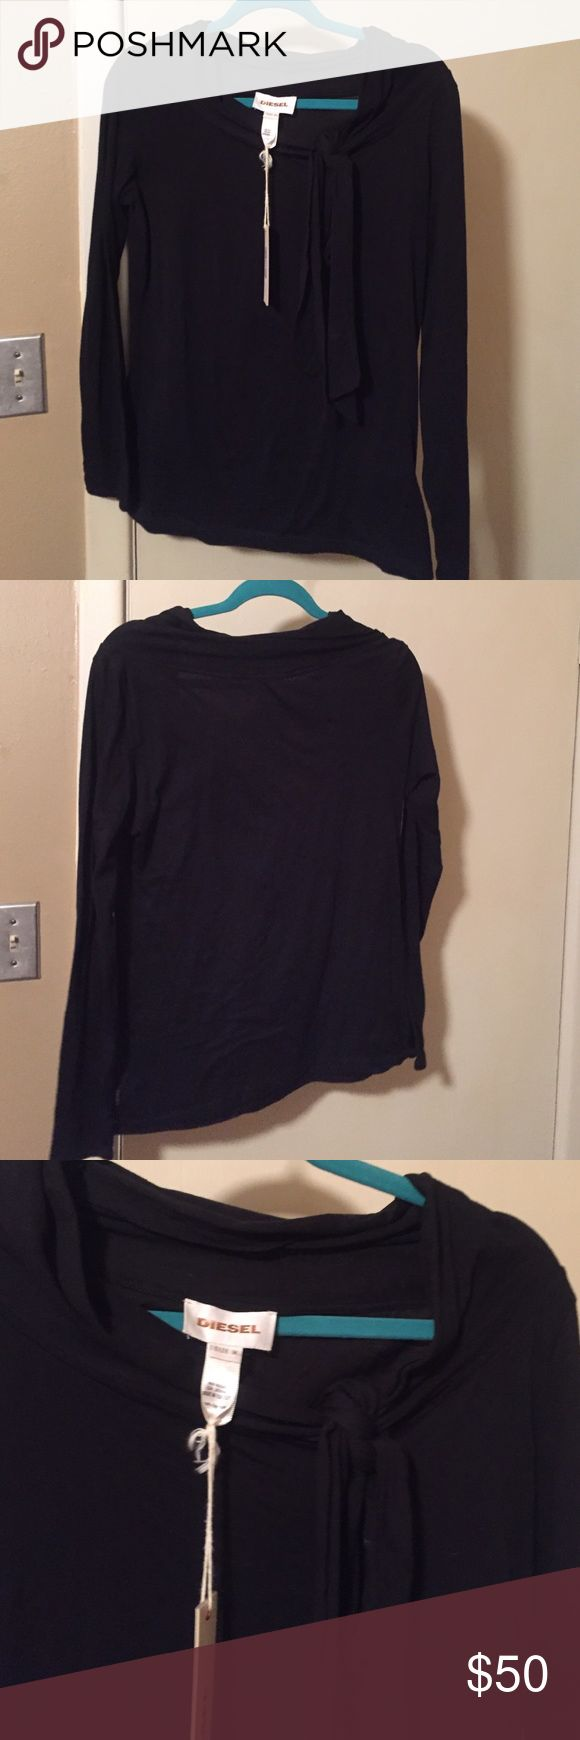 Basic black tee with side tie Long sleeve basic black tee shirt with a side tie. Fitted Diesel Tops Tees - Long Sleeve